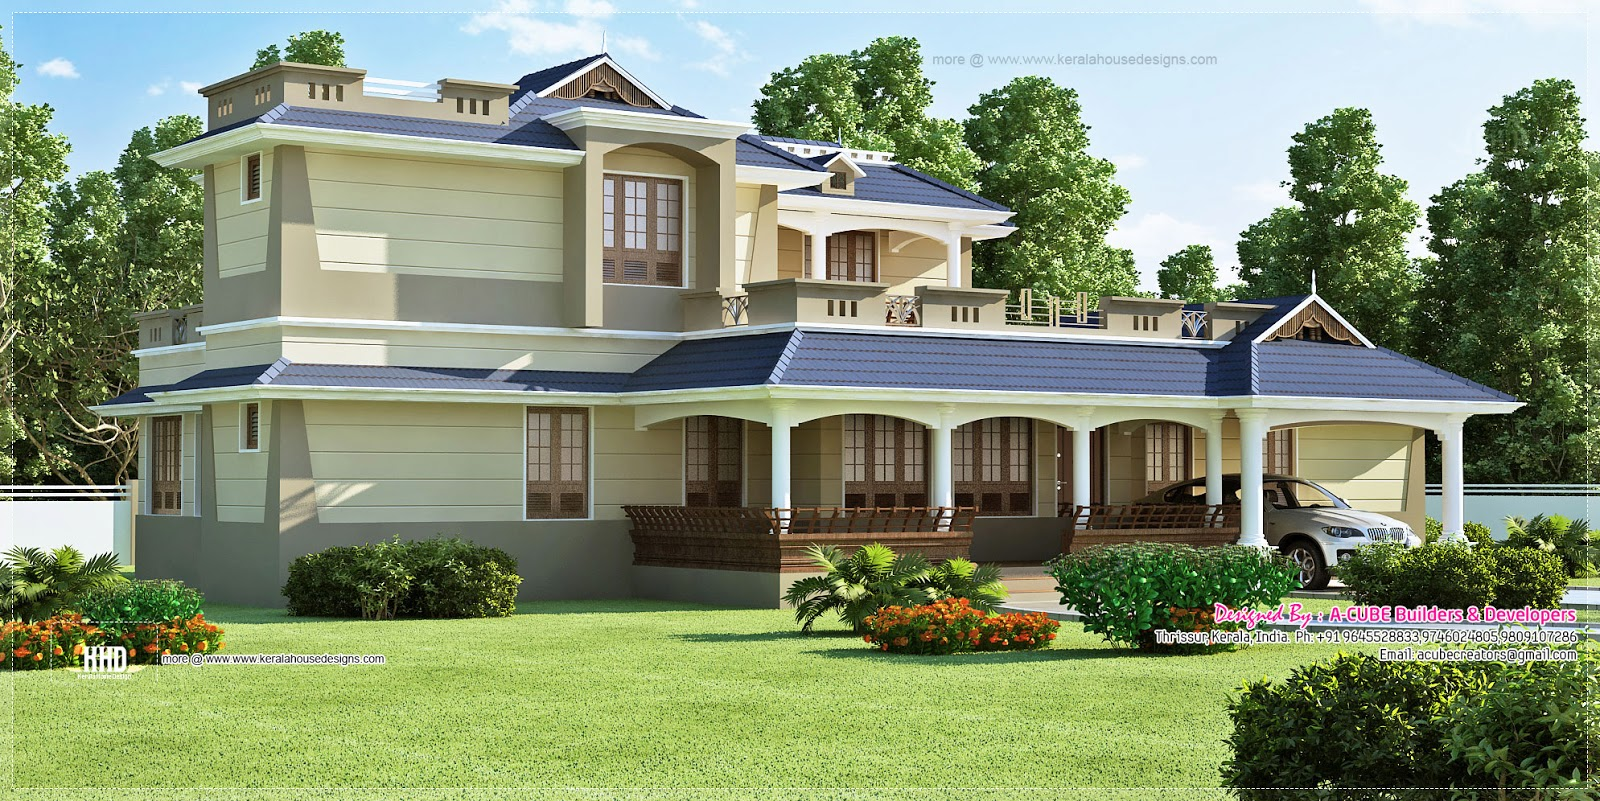 Luxury sloping roof 5 bedroom villa exterior home kerala for Indian home exterior design photos middle class